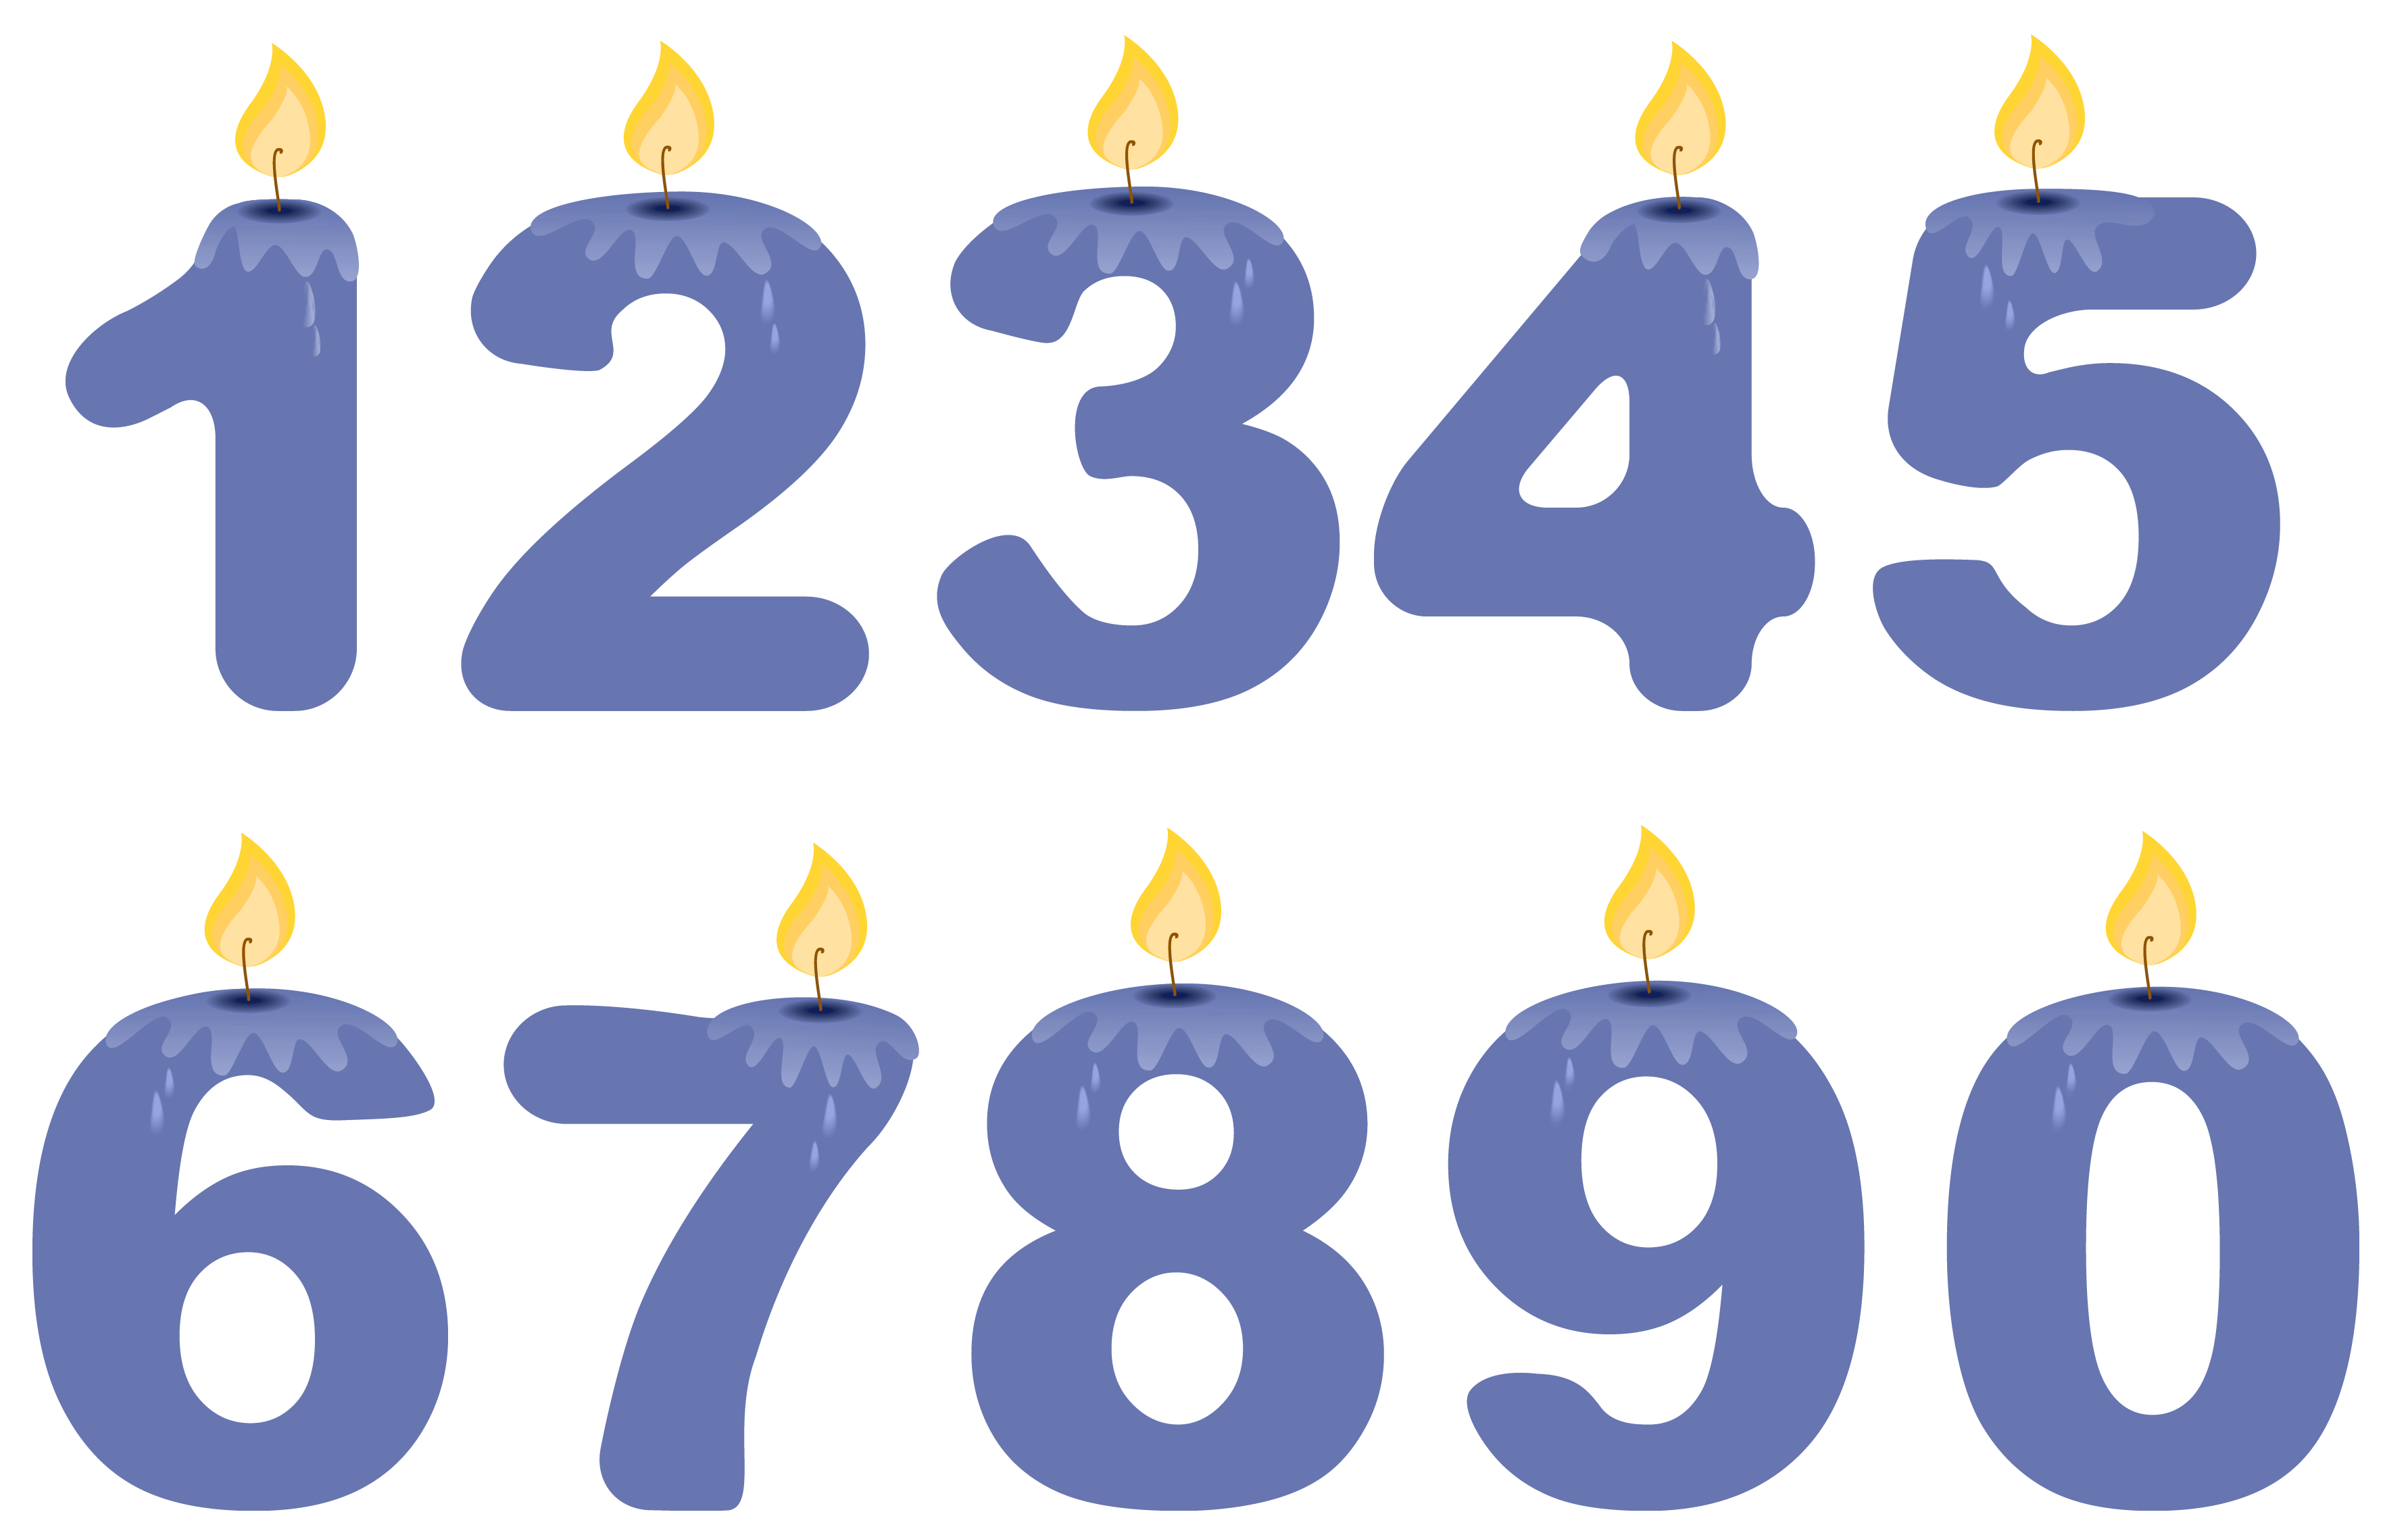 Clipart candle symbol. Transparent numbers birthday candles